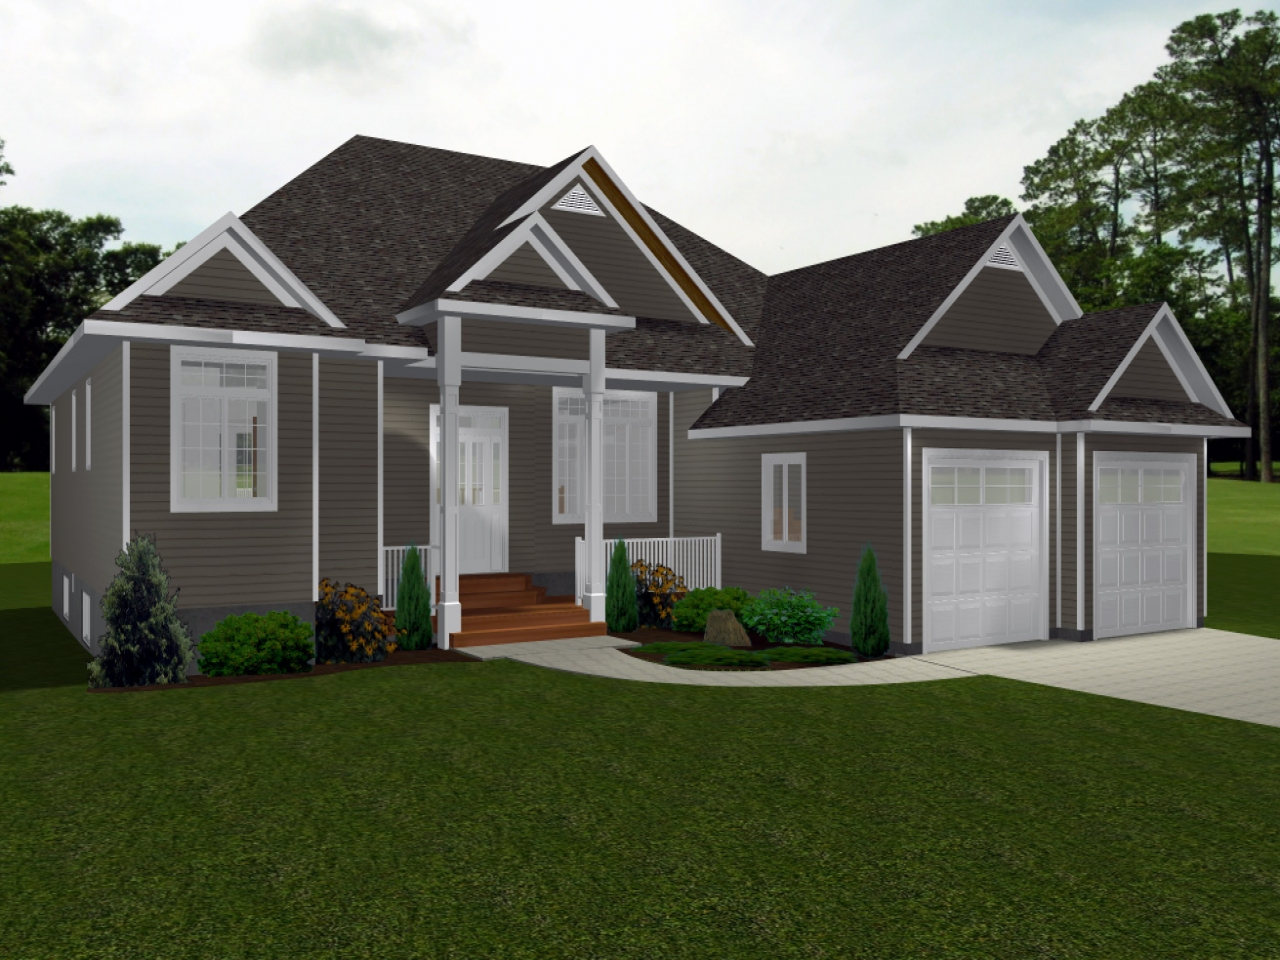 One Story Bungalow House Plans Canadian Bungalow House